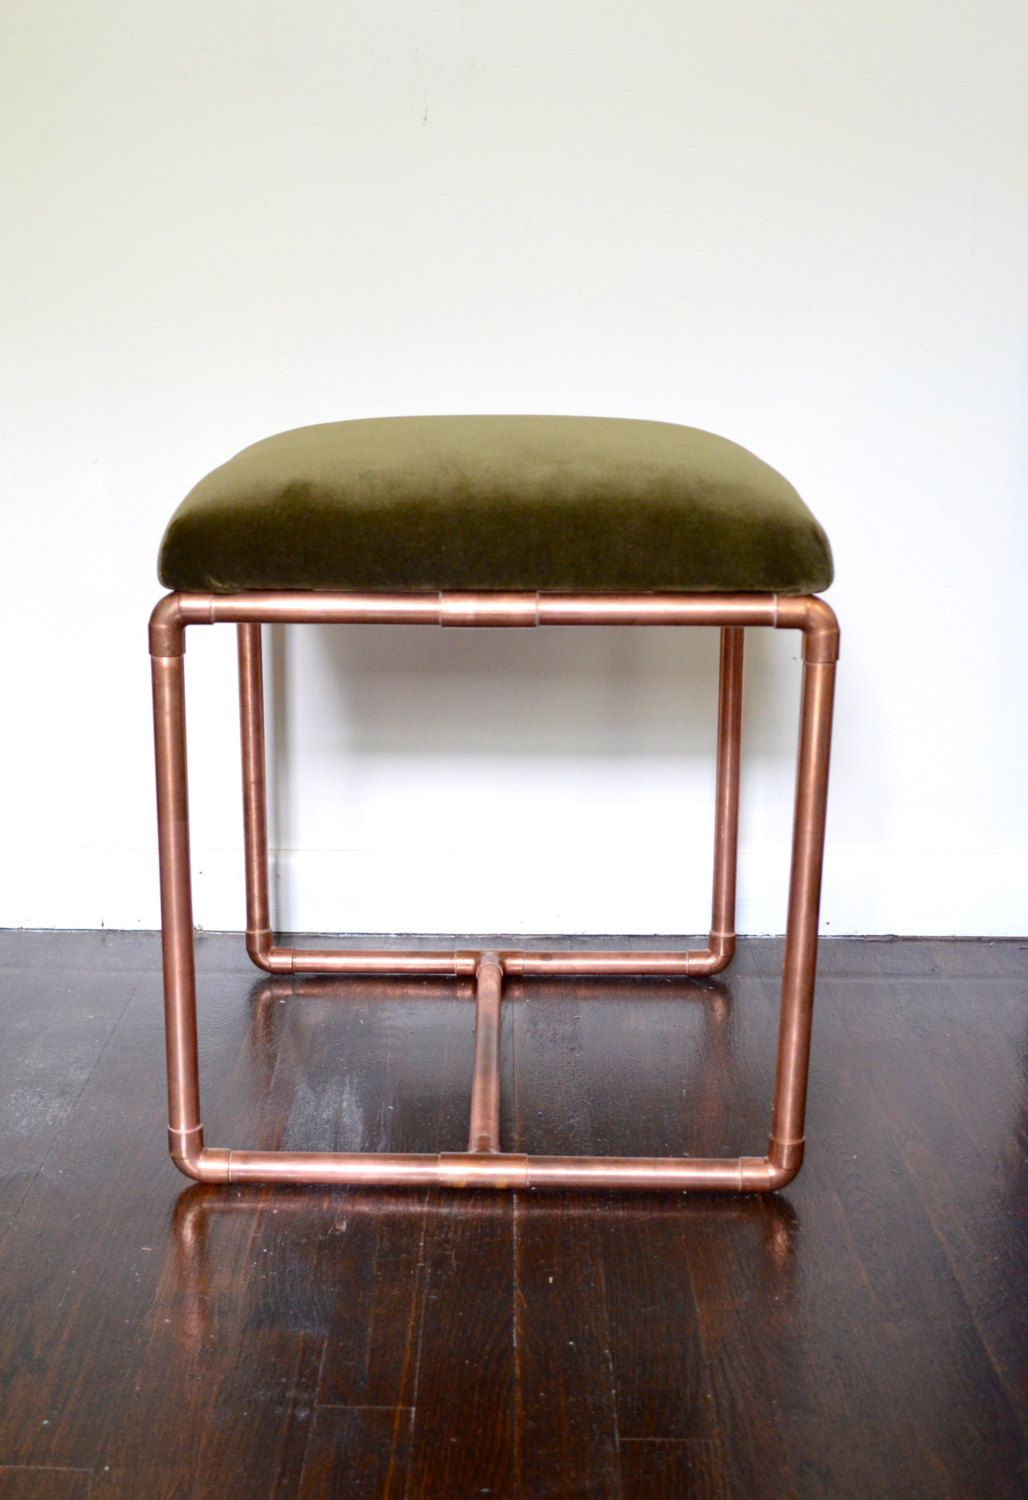 upholstered copper bench olive velvet by blumintshop on etsy home pinterest. Black Bedroom Furniture Sets. Home Design Ideas